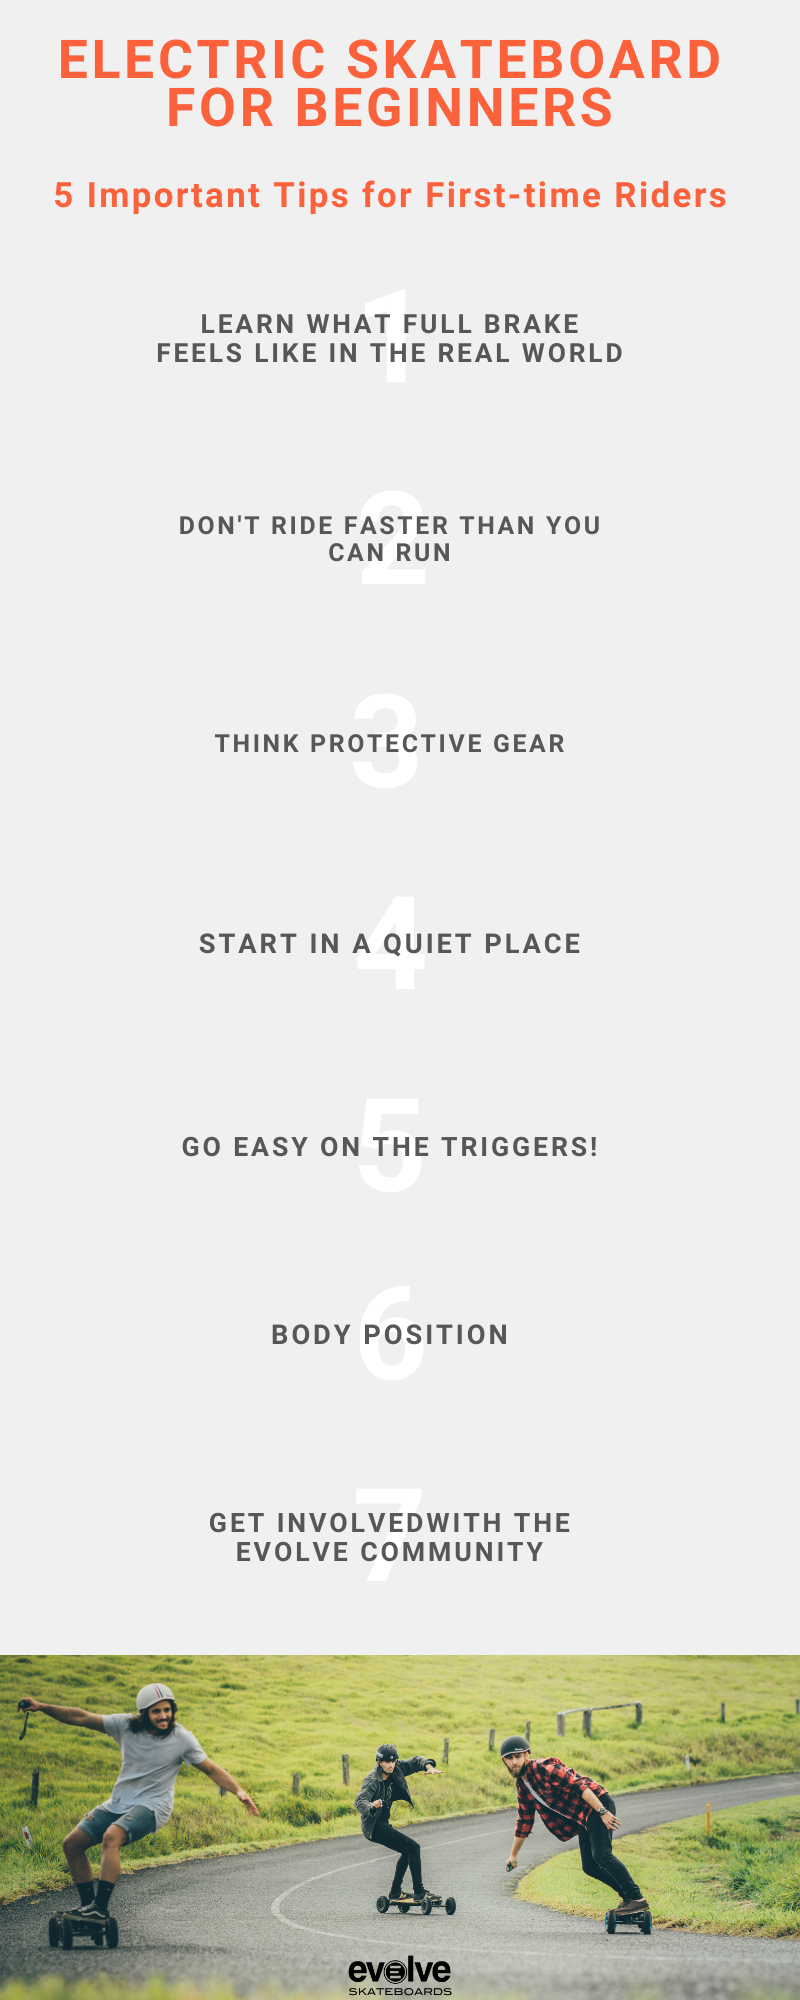 Electric Skateboard for Beginners infographic